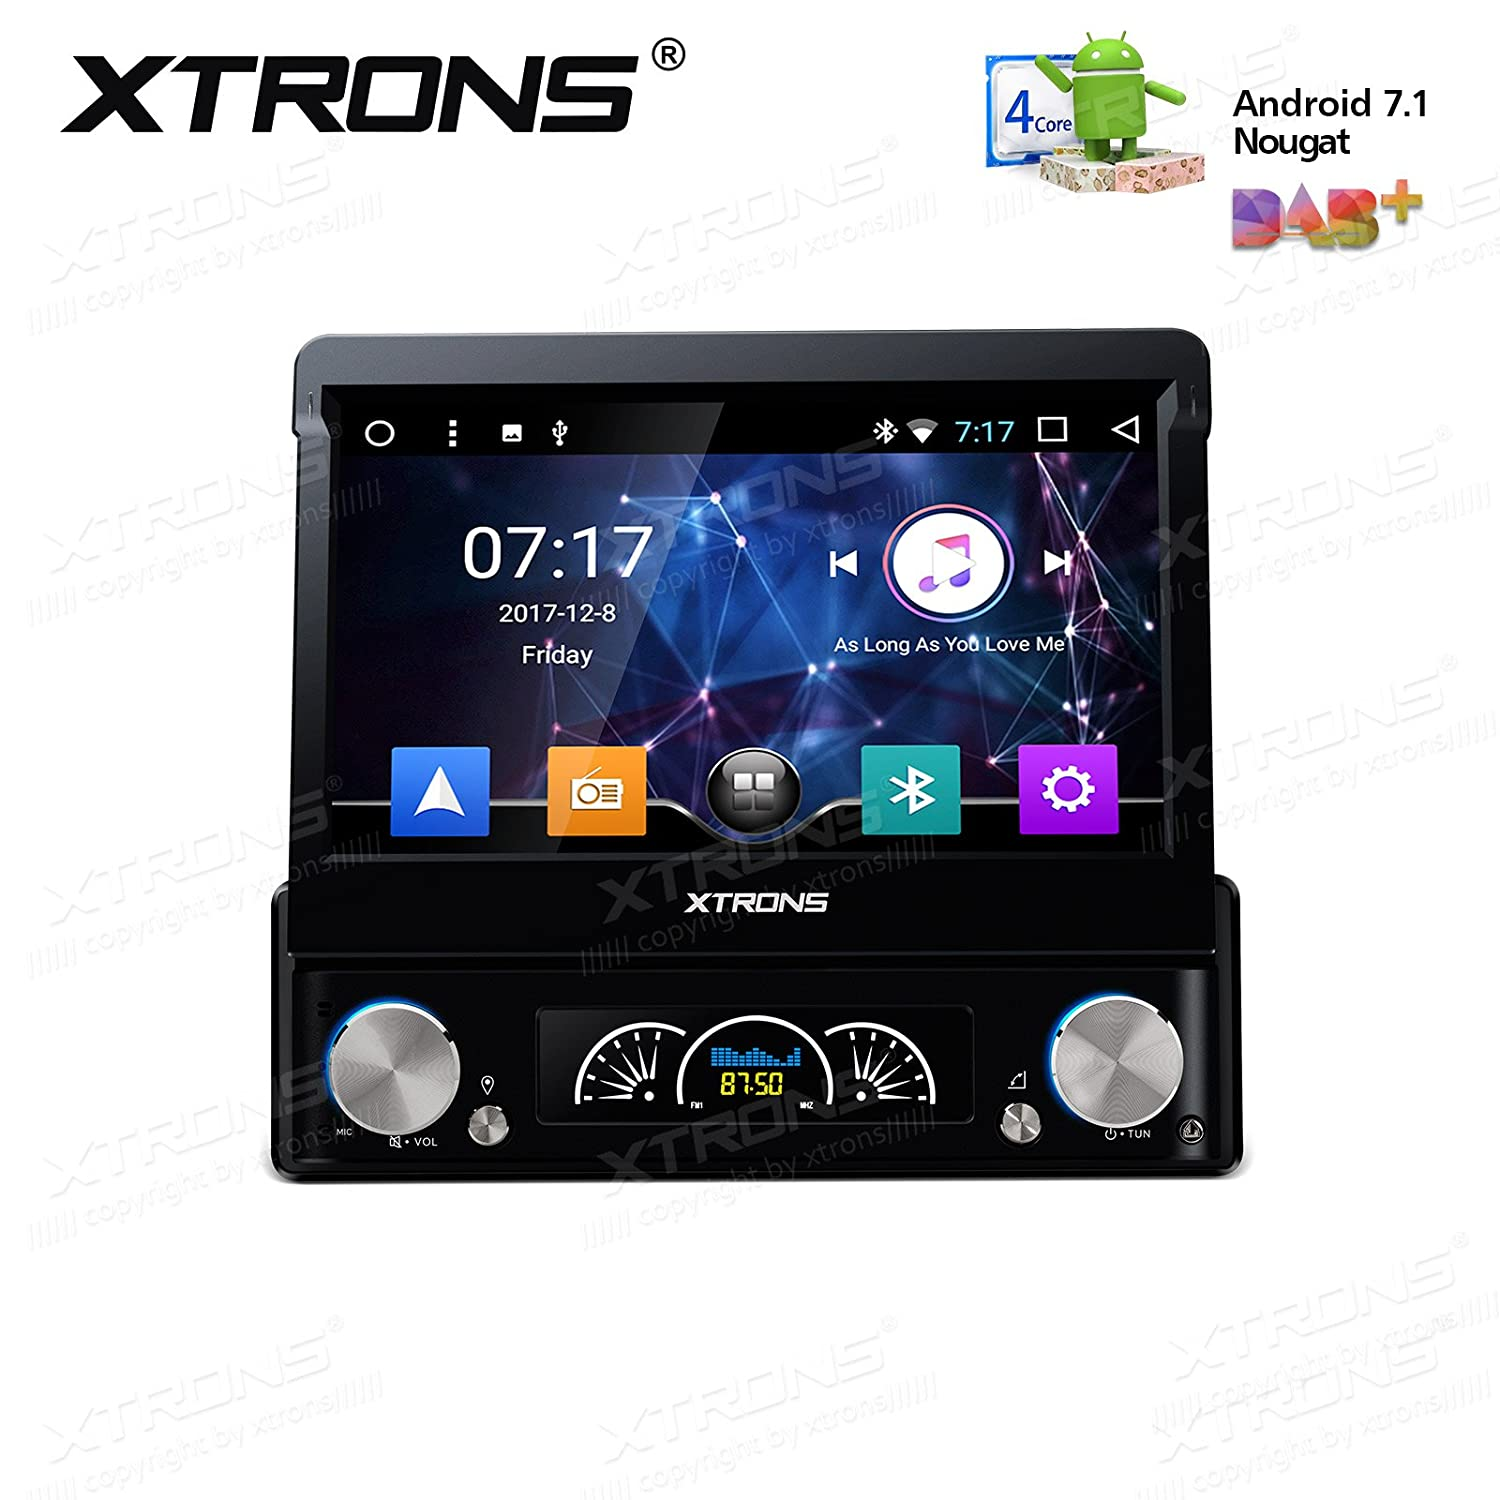 "XTRONS Single 1 Din Android 7.1 Quad Core 7"" Motorized Detachable HD Multi-Touch Screen Car Stereo in Dash DVD Player GPS Radio Screen Mirroring Function OBD2"